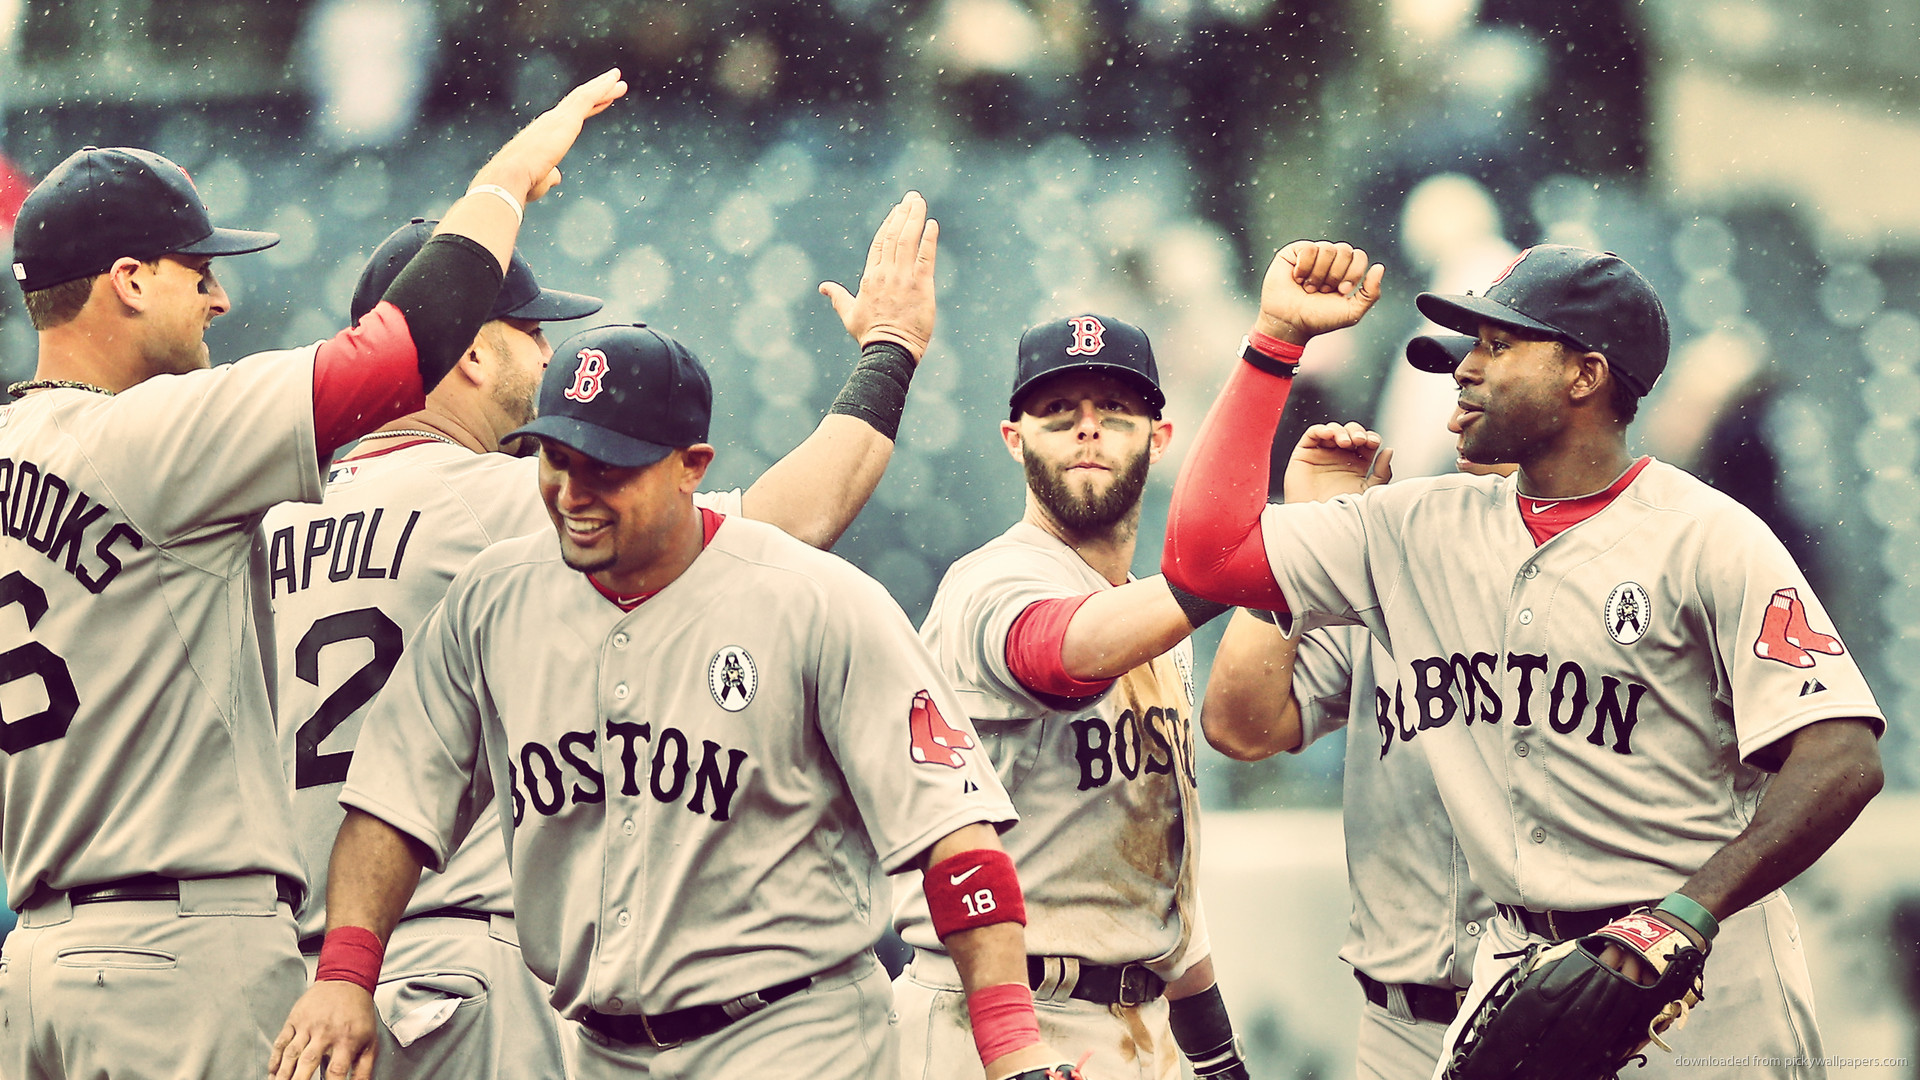 1920x1080 Red Sox Cheering in Rain picture